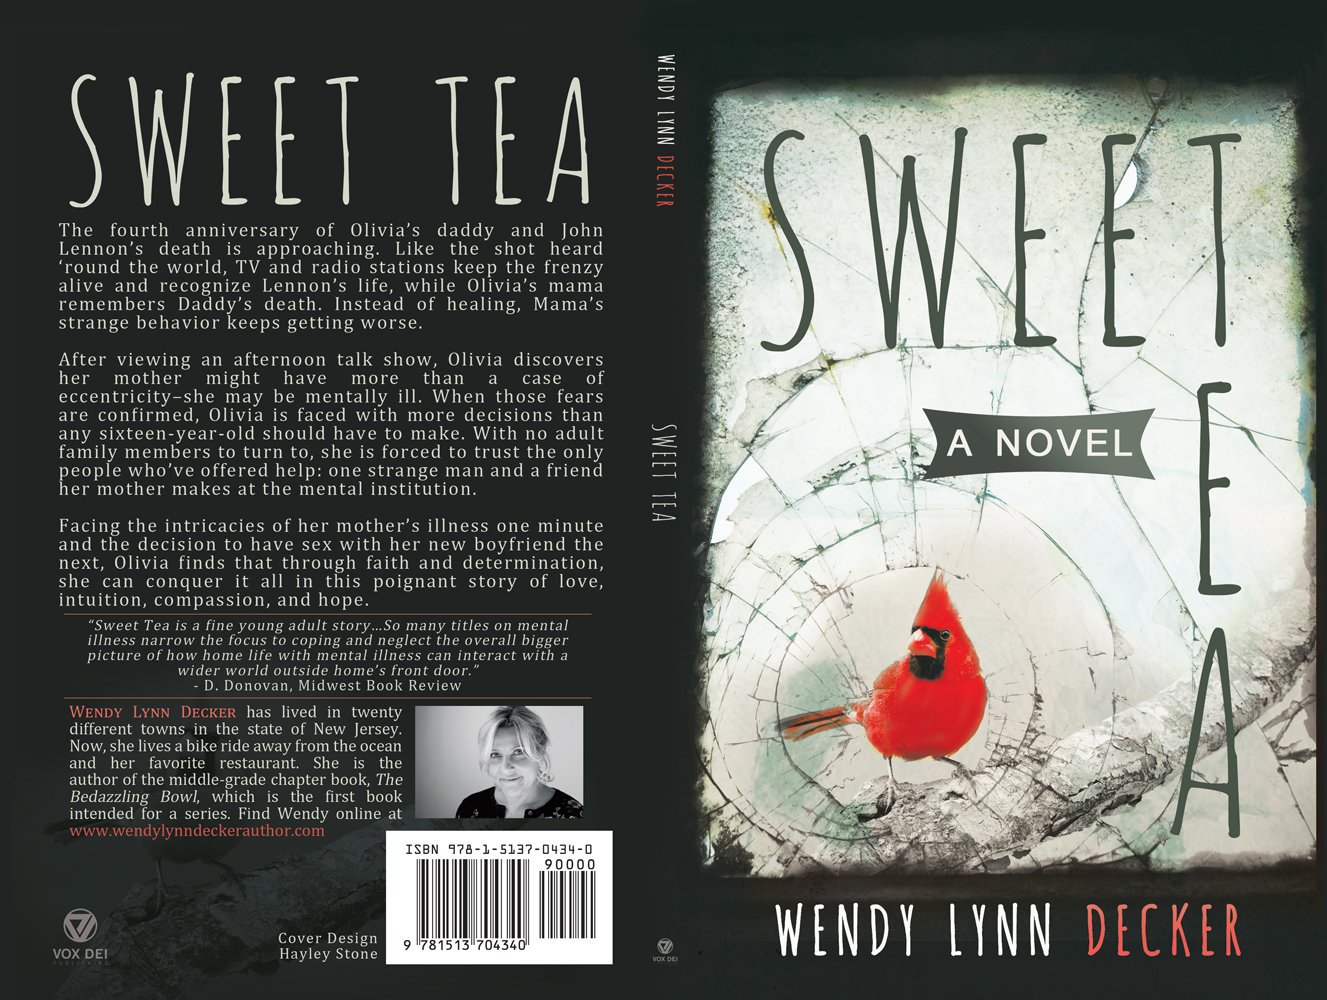 Design book covers online - Sweet Tea